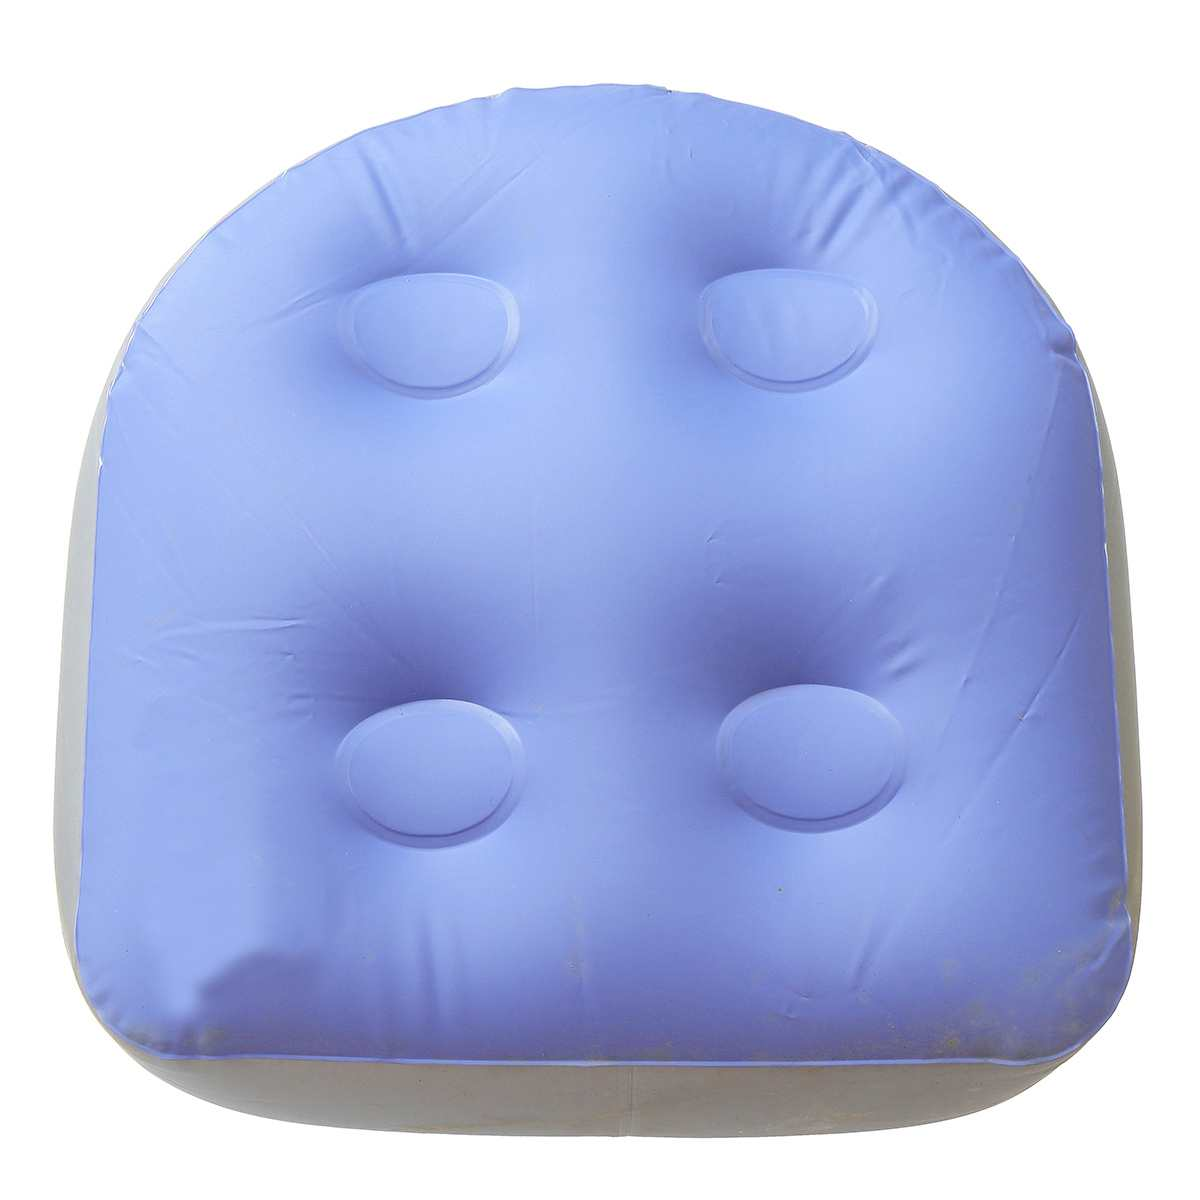 Back Pad Spa Cushion Massage Mat Soft Inflatable Booster Seat For Adults Kids New Booster Seat Hot Tub Spa Cushion Mat Seat